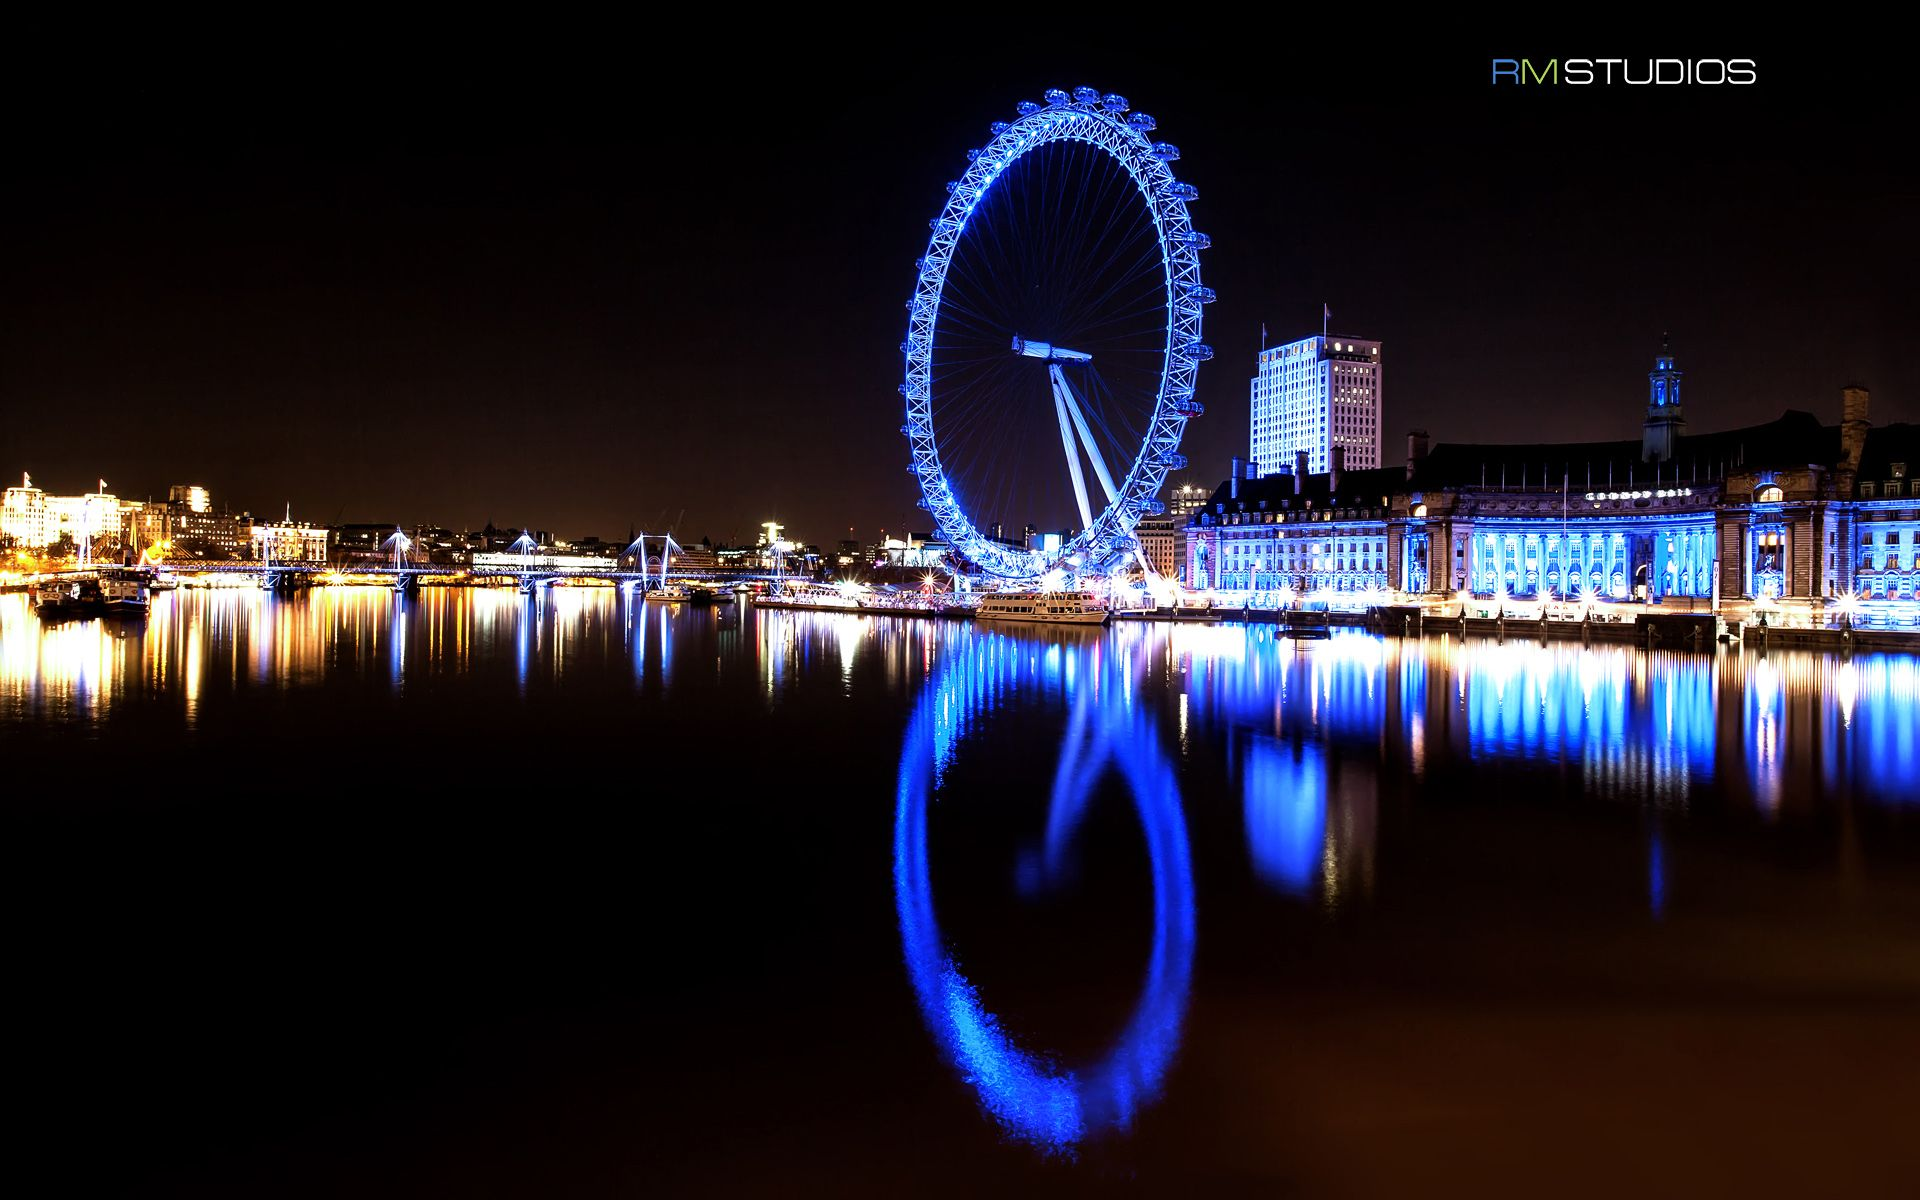 London Eye River Thames HD Widescreen Travel World Wallpaper From The Above Resolutions